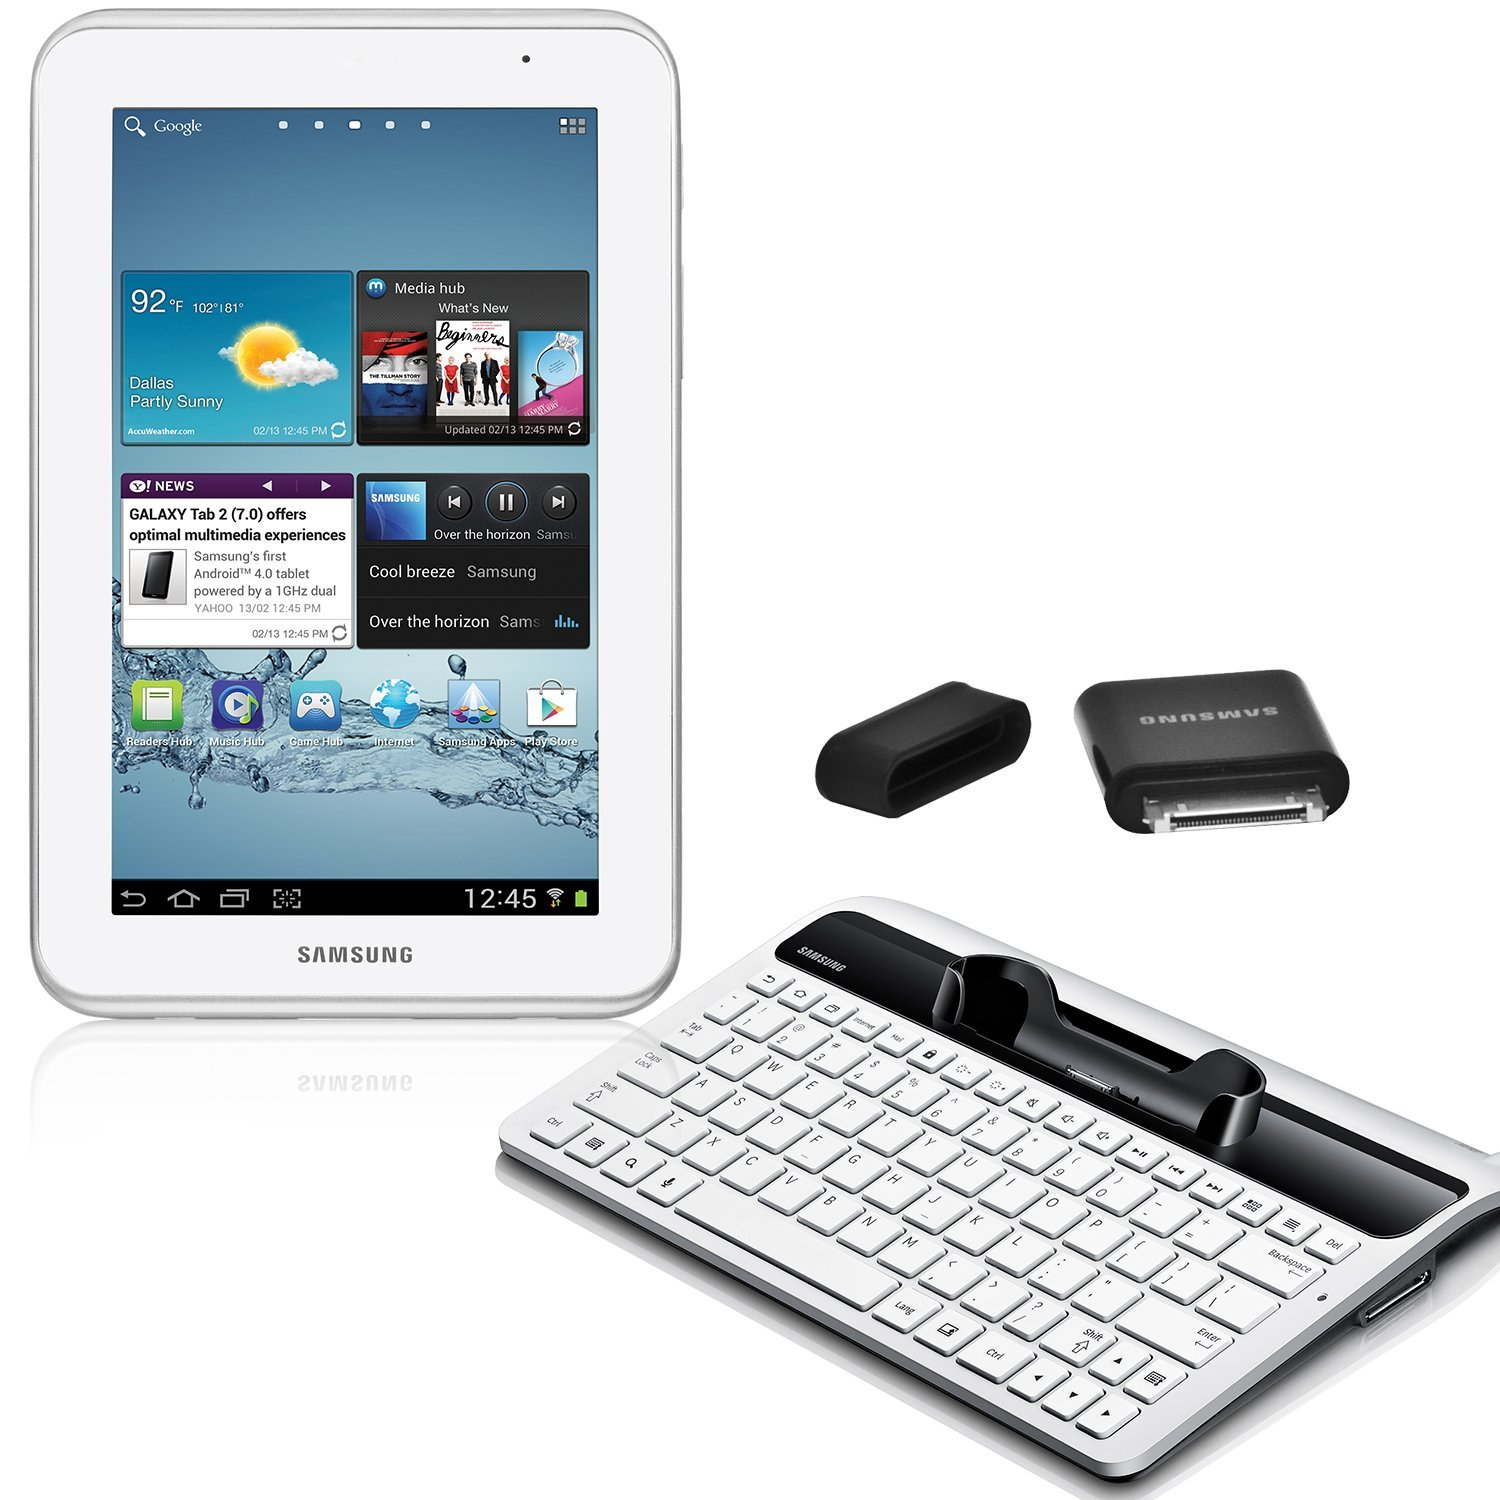 Samsung Galaxy Tab 2 7.0 Student Bundle Now Available For ...